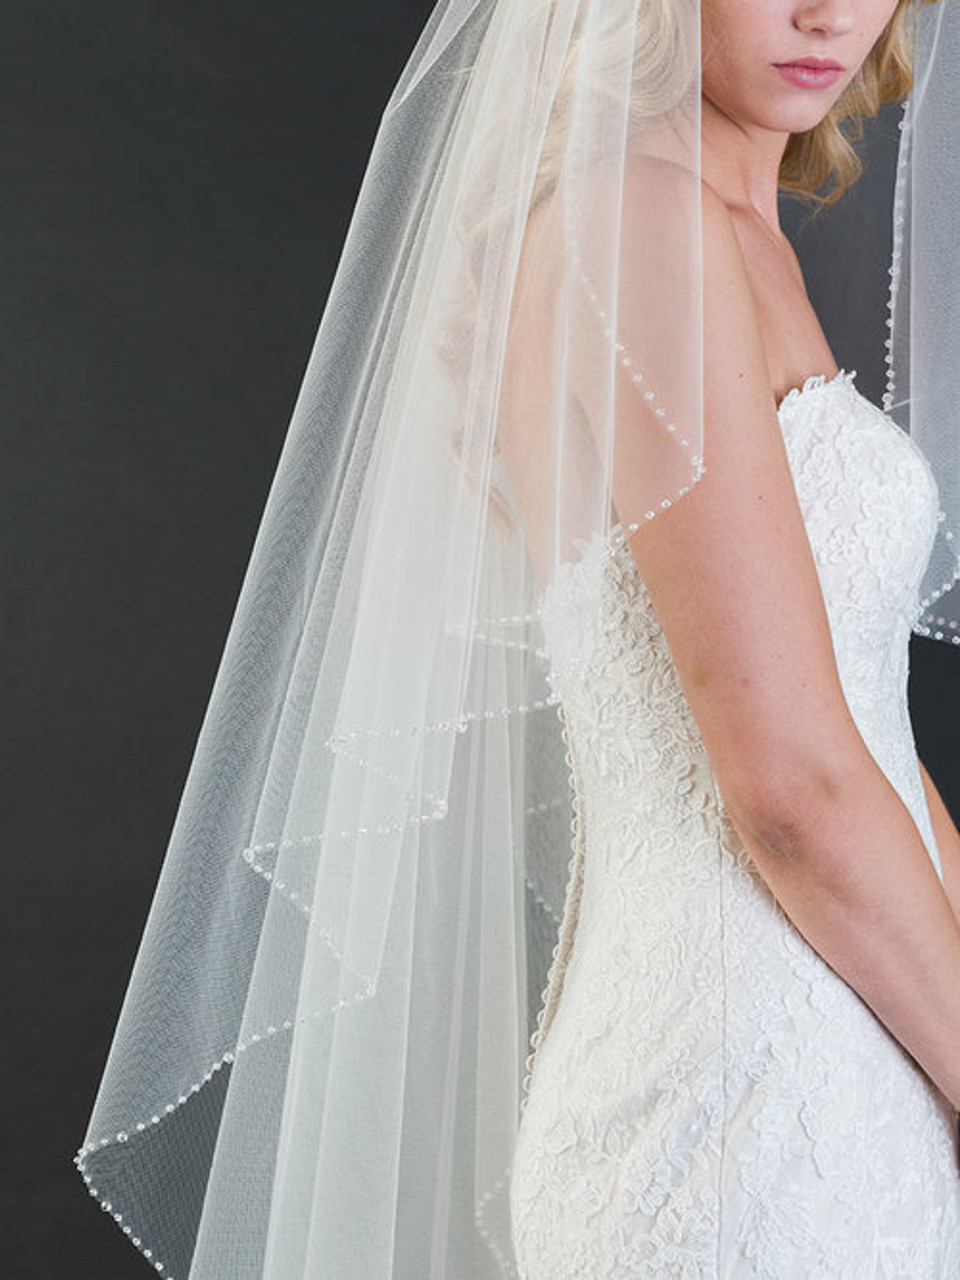 Bel Aire Bridal Veils V7468 - 1-tier waltz length cascade veil with edge of sparkling crystals